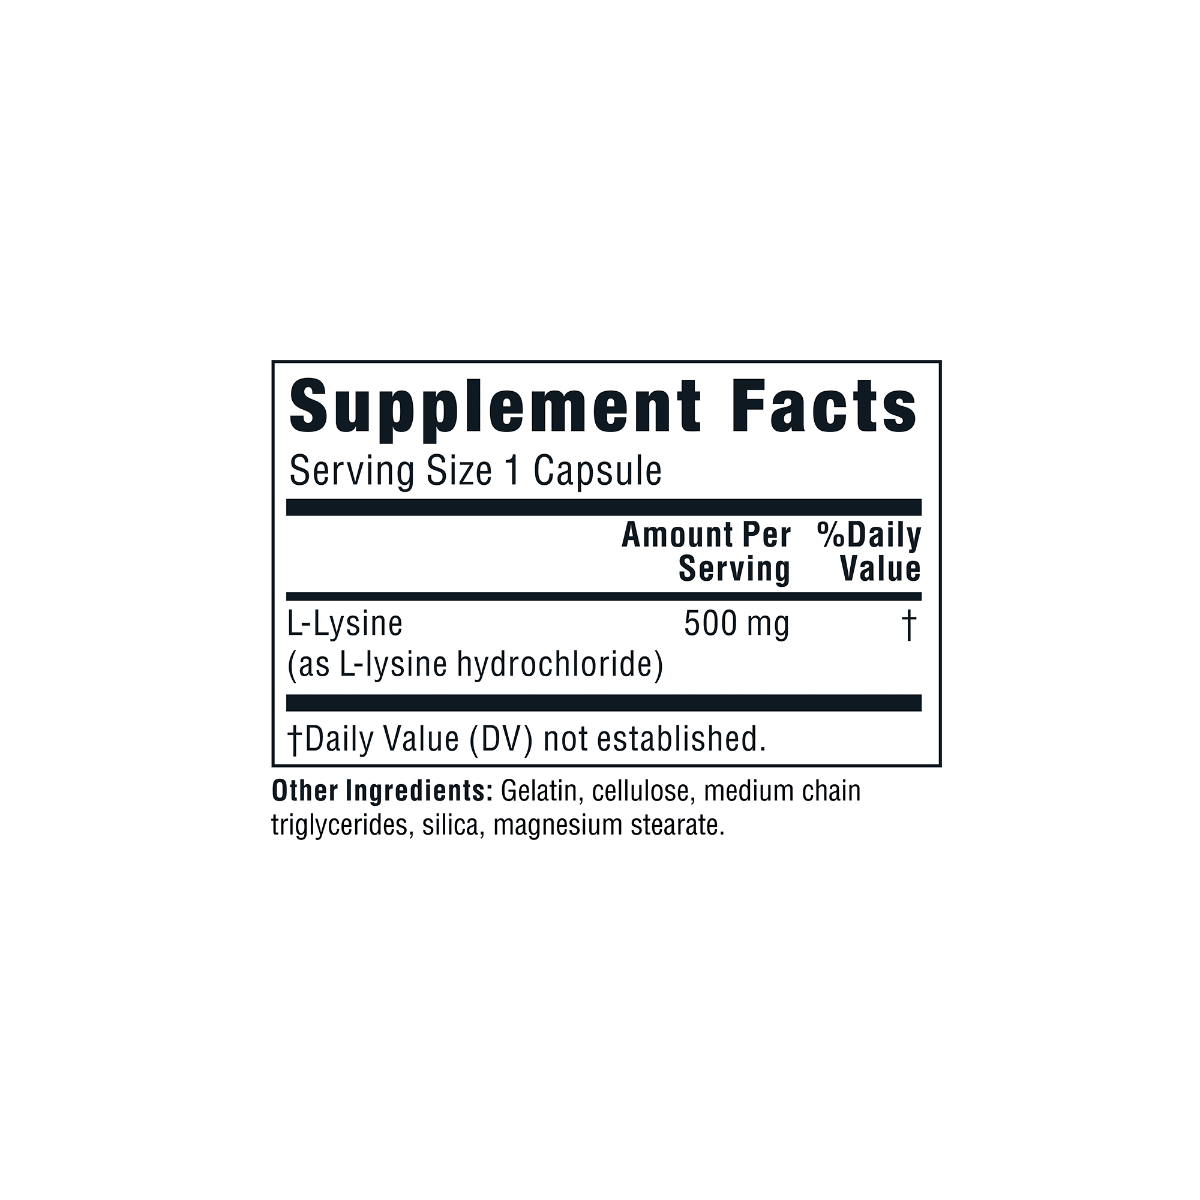 Supplement facts for Twinlab L-Lysine